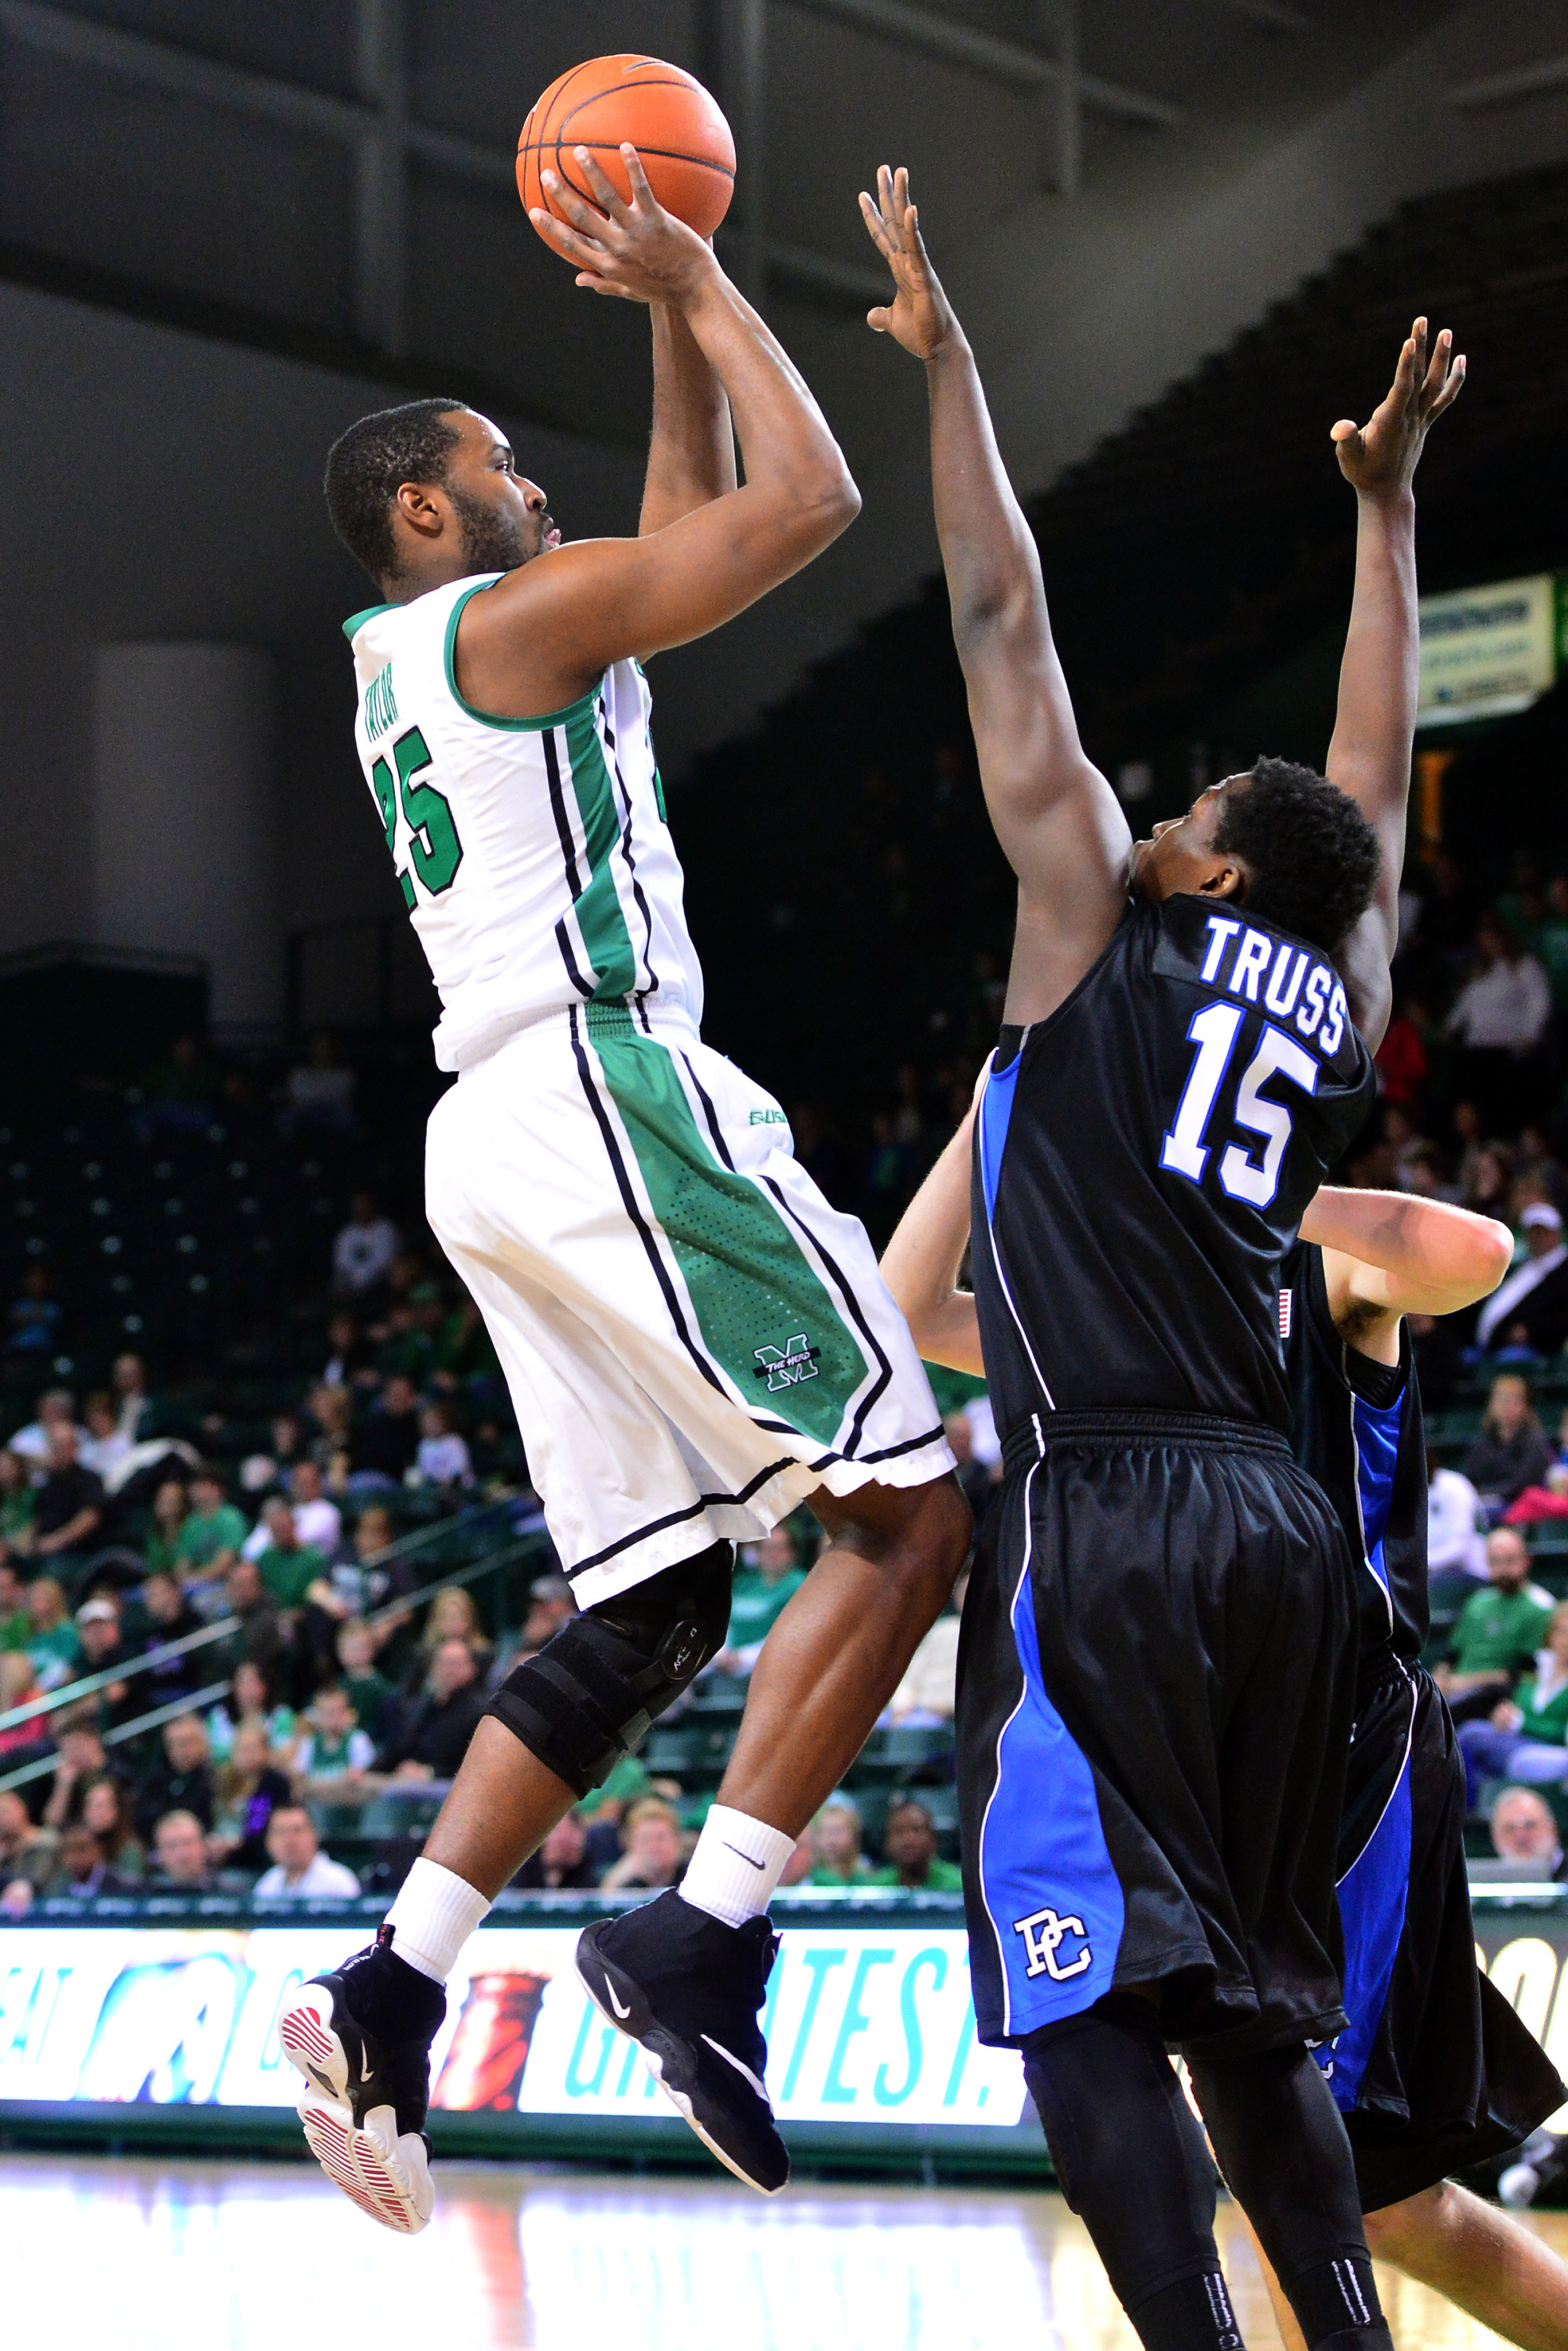 Ryan Taylor will look to be a force for the Herd on both ends of the floor